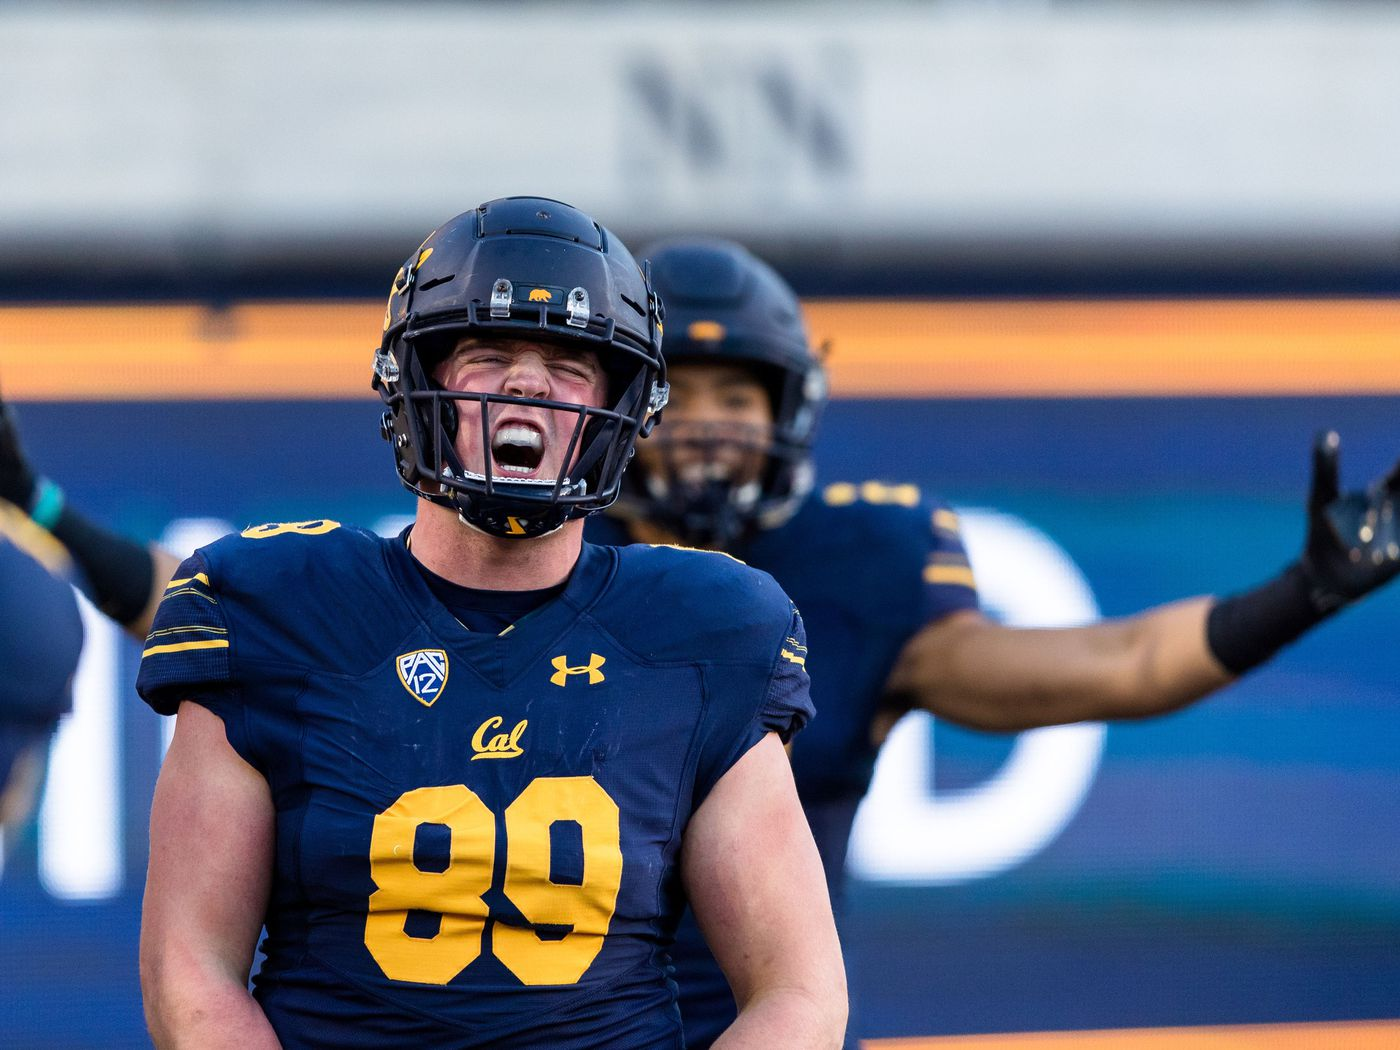 Cal Doesnt Need That Much Offense To Have A Special 2019